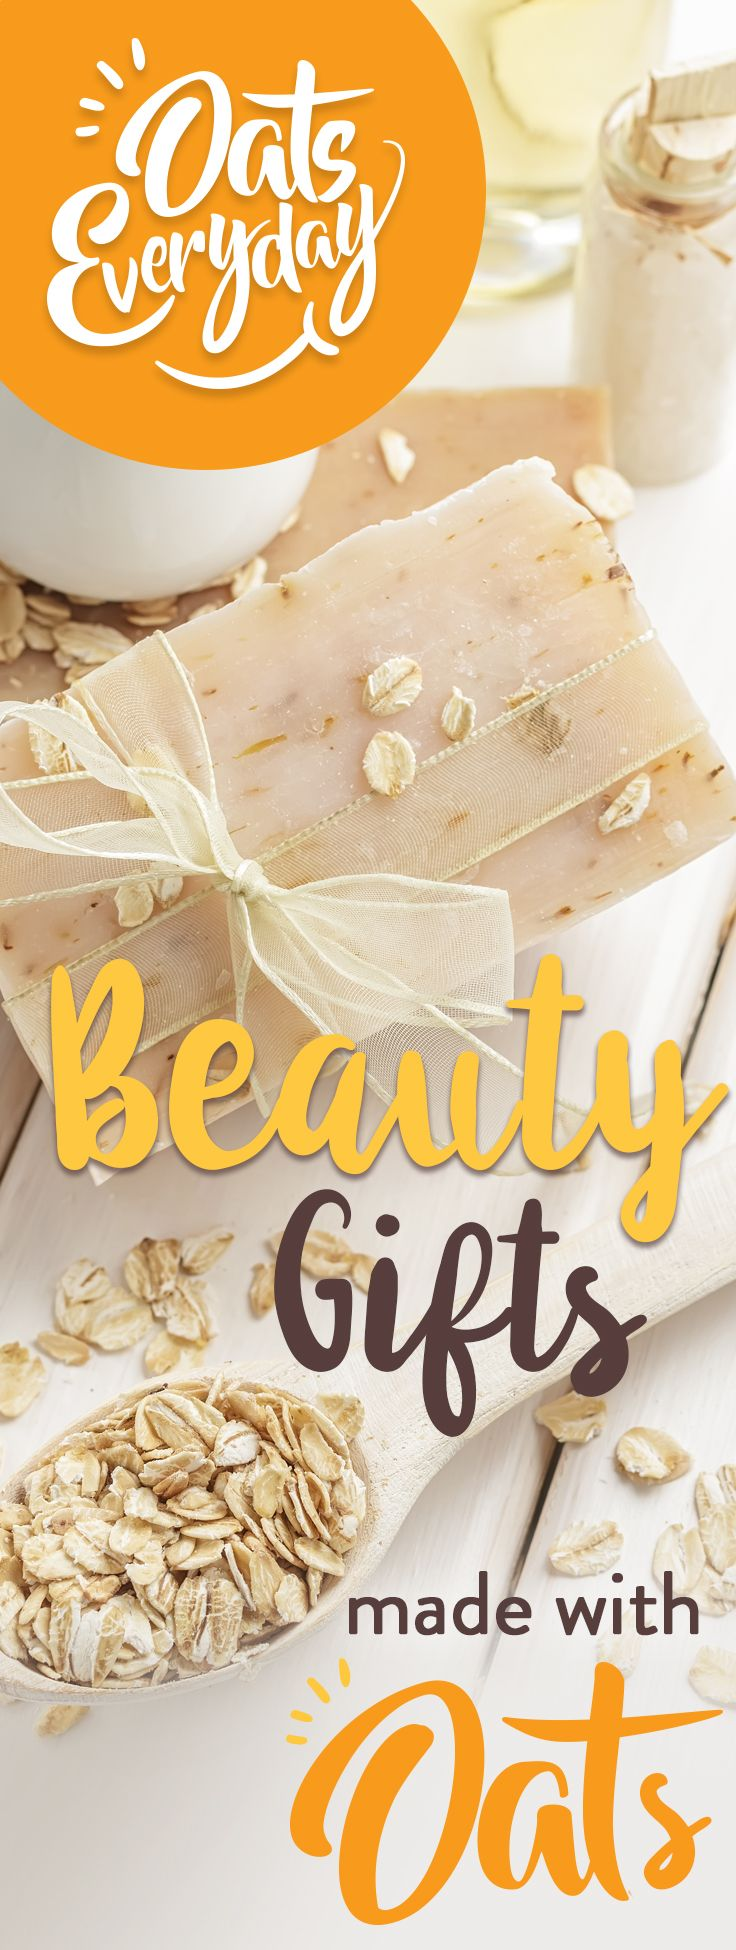 Beauty Gifts Naturally moisturizing oats are renowned for their beautifying properties.